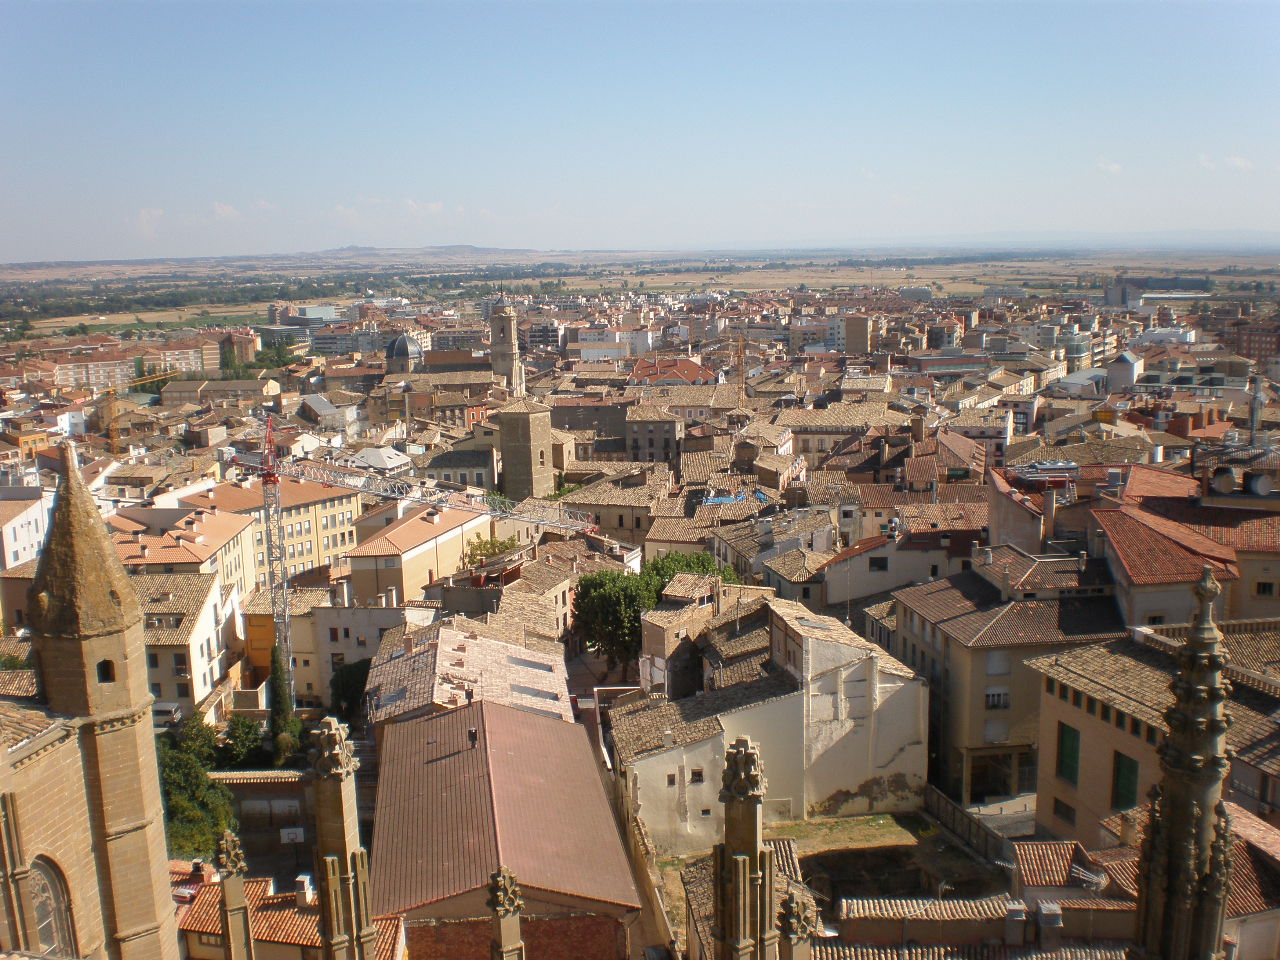 The City Of Huesca As Seen From The Cathedral